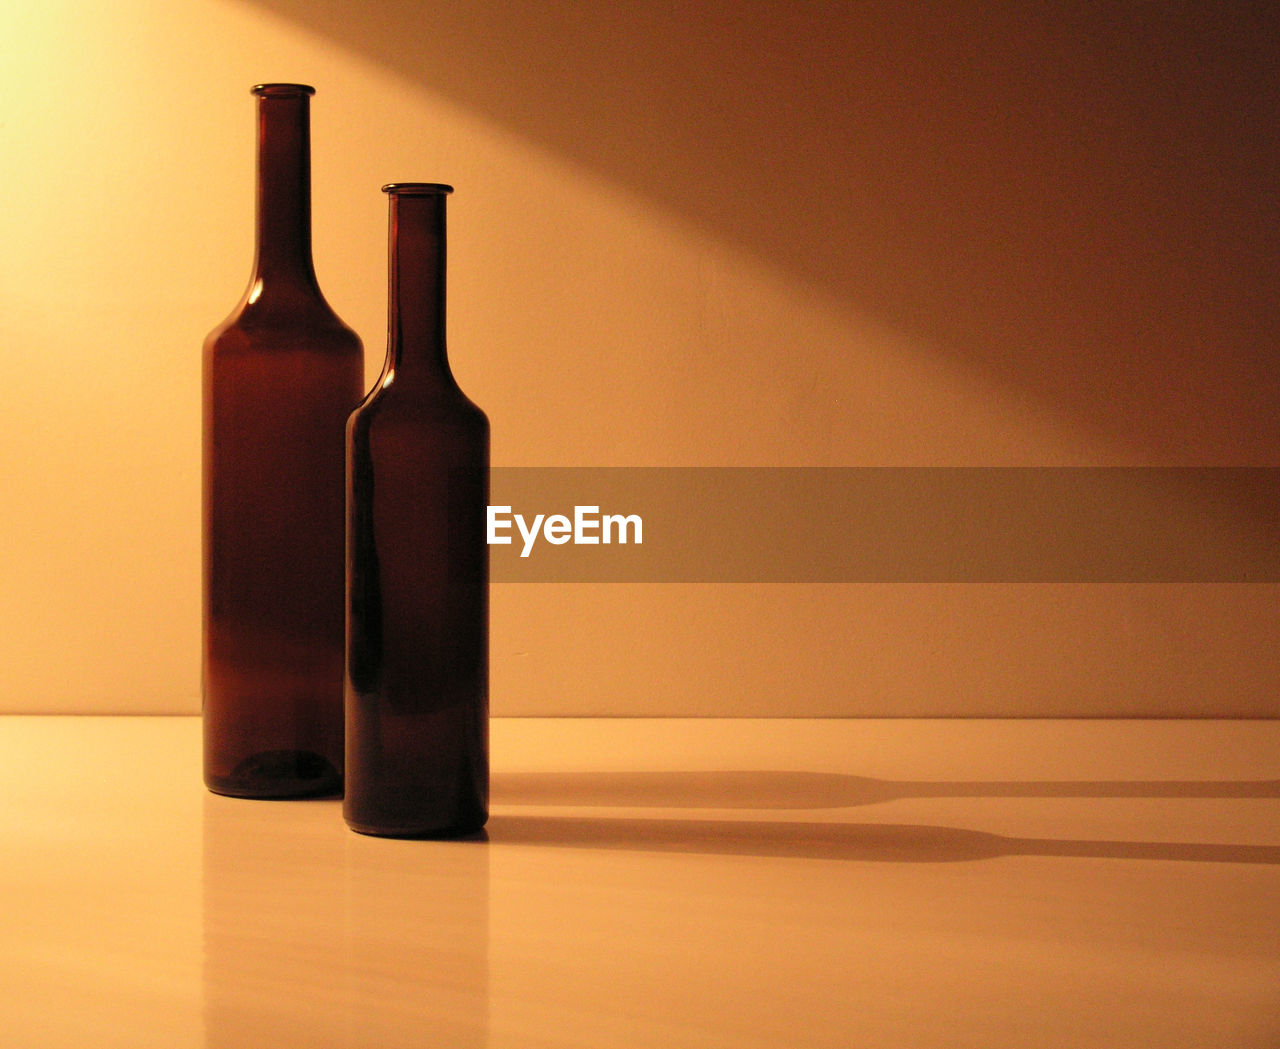 still life, indoors, bottle, no people, table, container, food and drink, glass - material, wall - building feature, copy space, empty, reflection, food, drink, side by side, shadow, freshness, alcohol, single object, close-up, blank